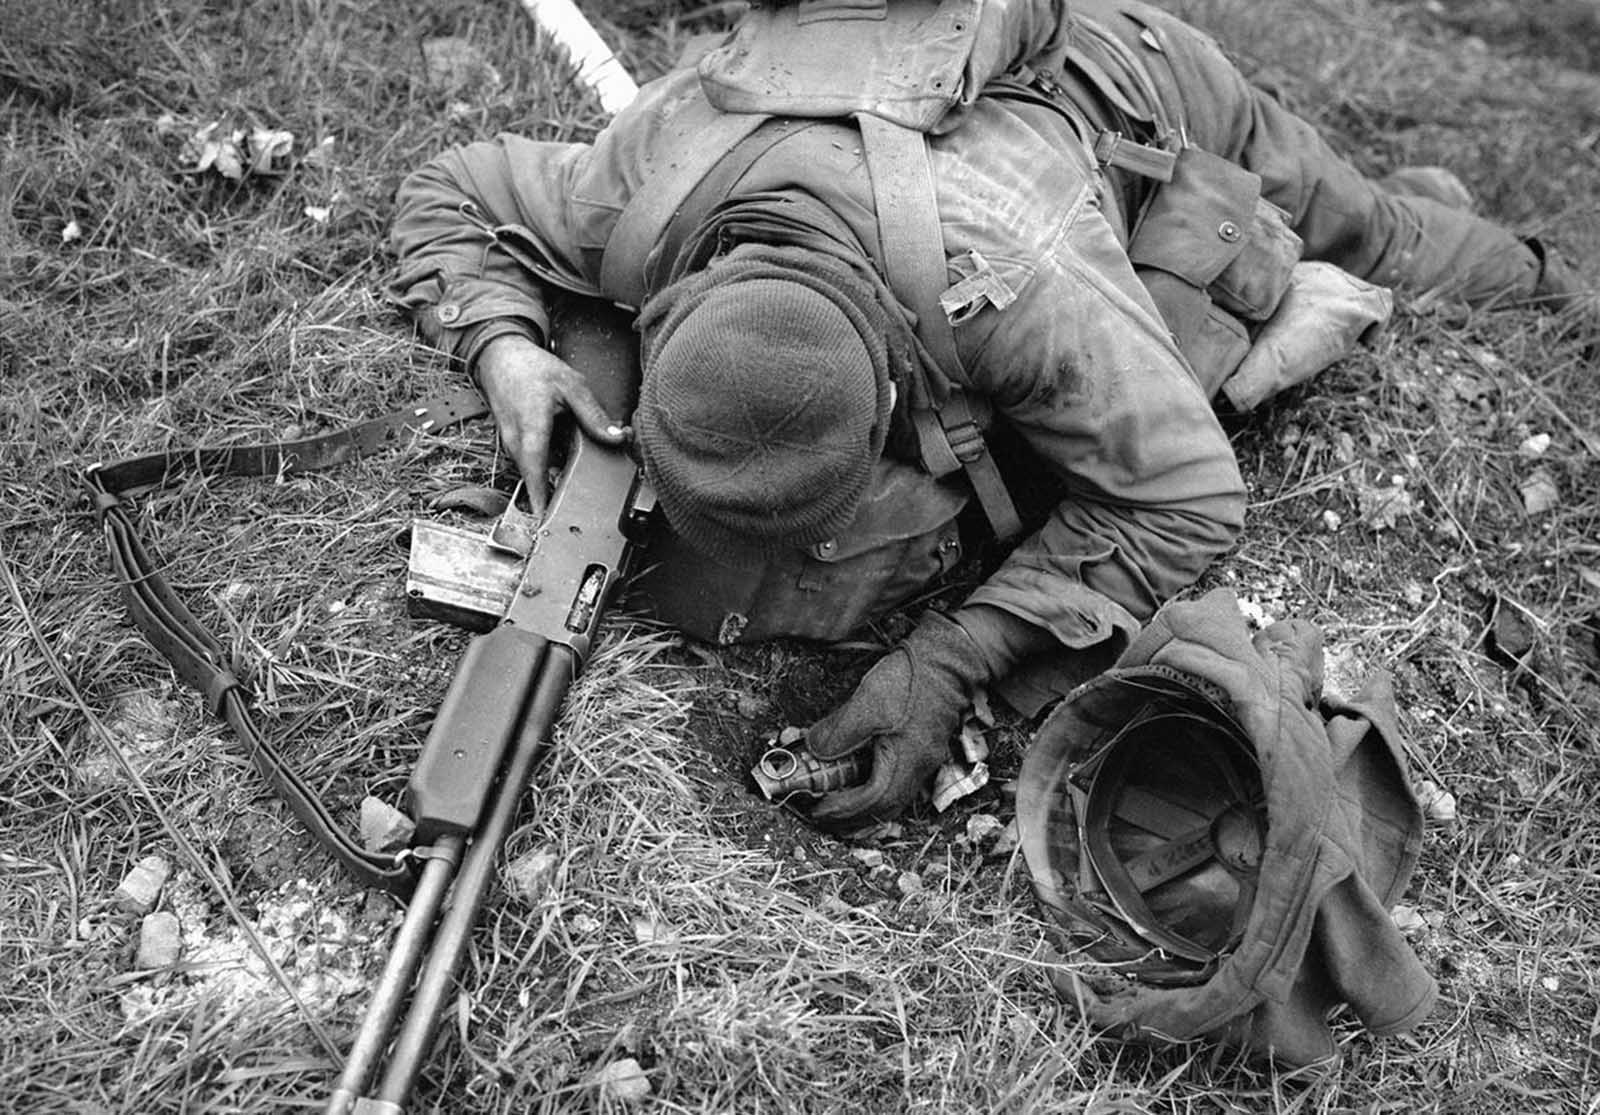 An unidentified American soldier, shot dead by a German sniper, clutches his rifle and hand grenade in March of 1945 in Coblenz, Germany.